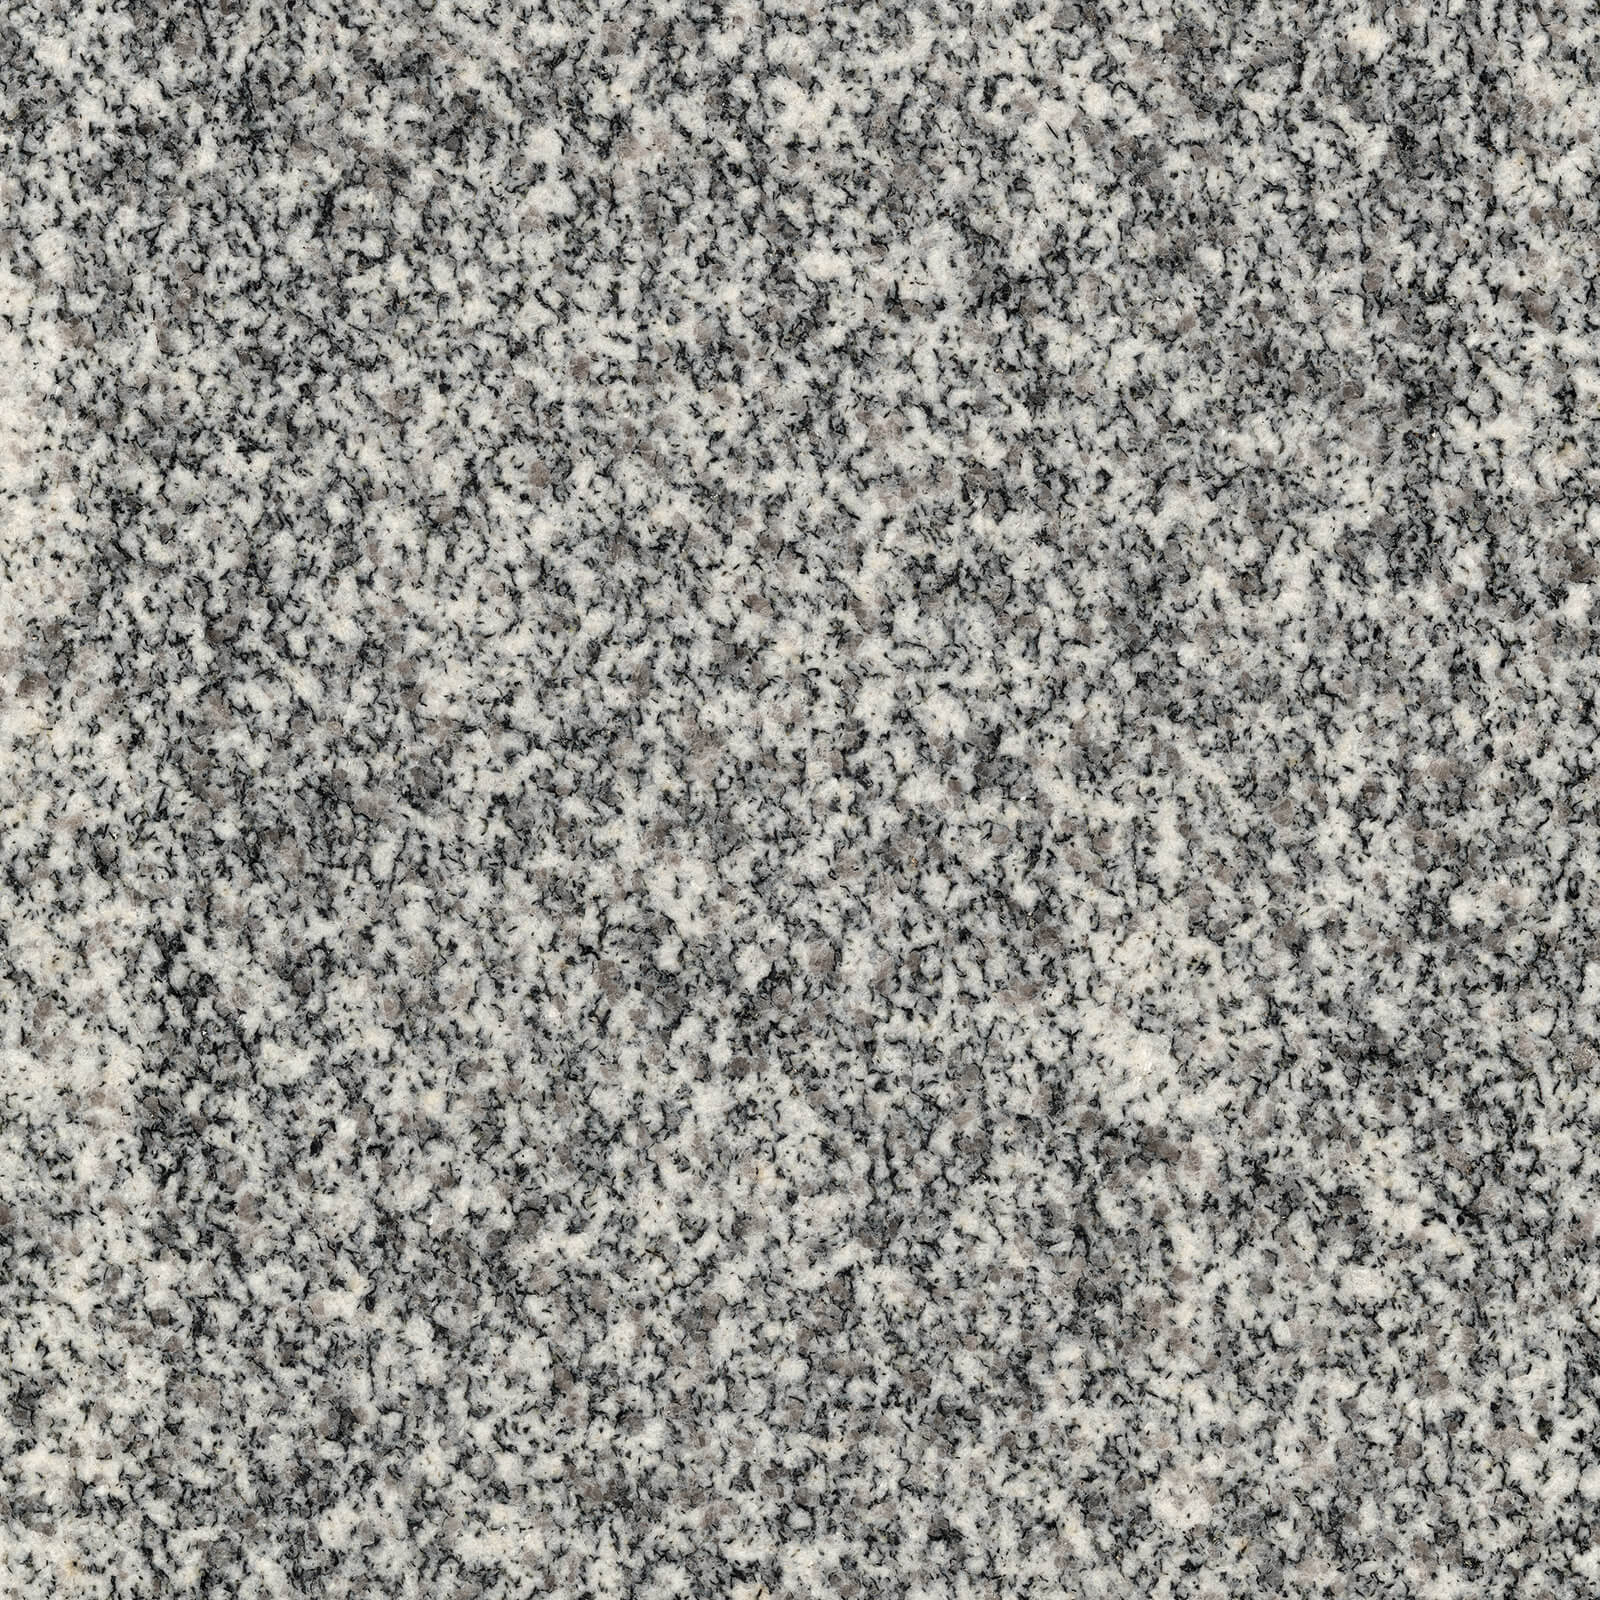 Granite Curbing | Swenson | North American Natural Stones